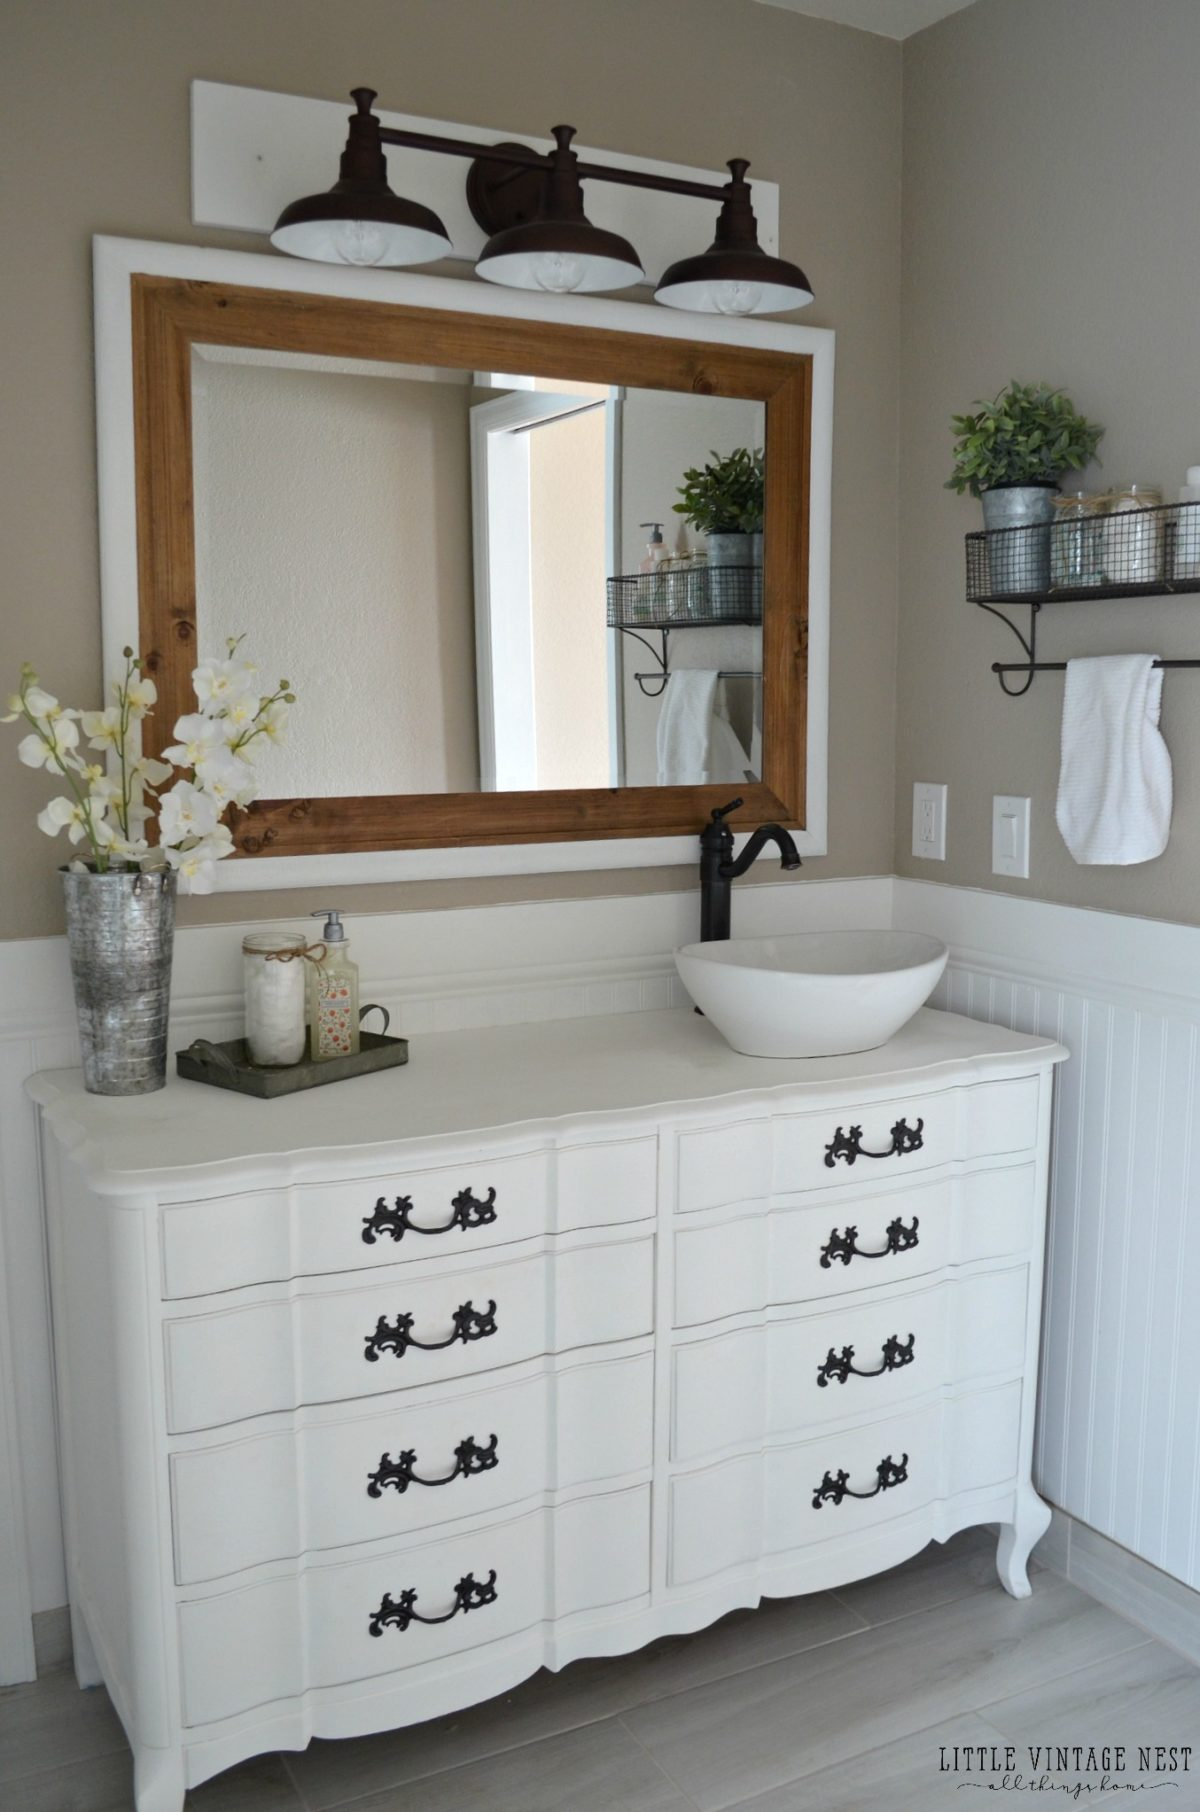 Bathroom Vanity Lights Farmhouse : Farmhouse Master Bathroom Reveal - Little Vintage Nest